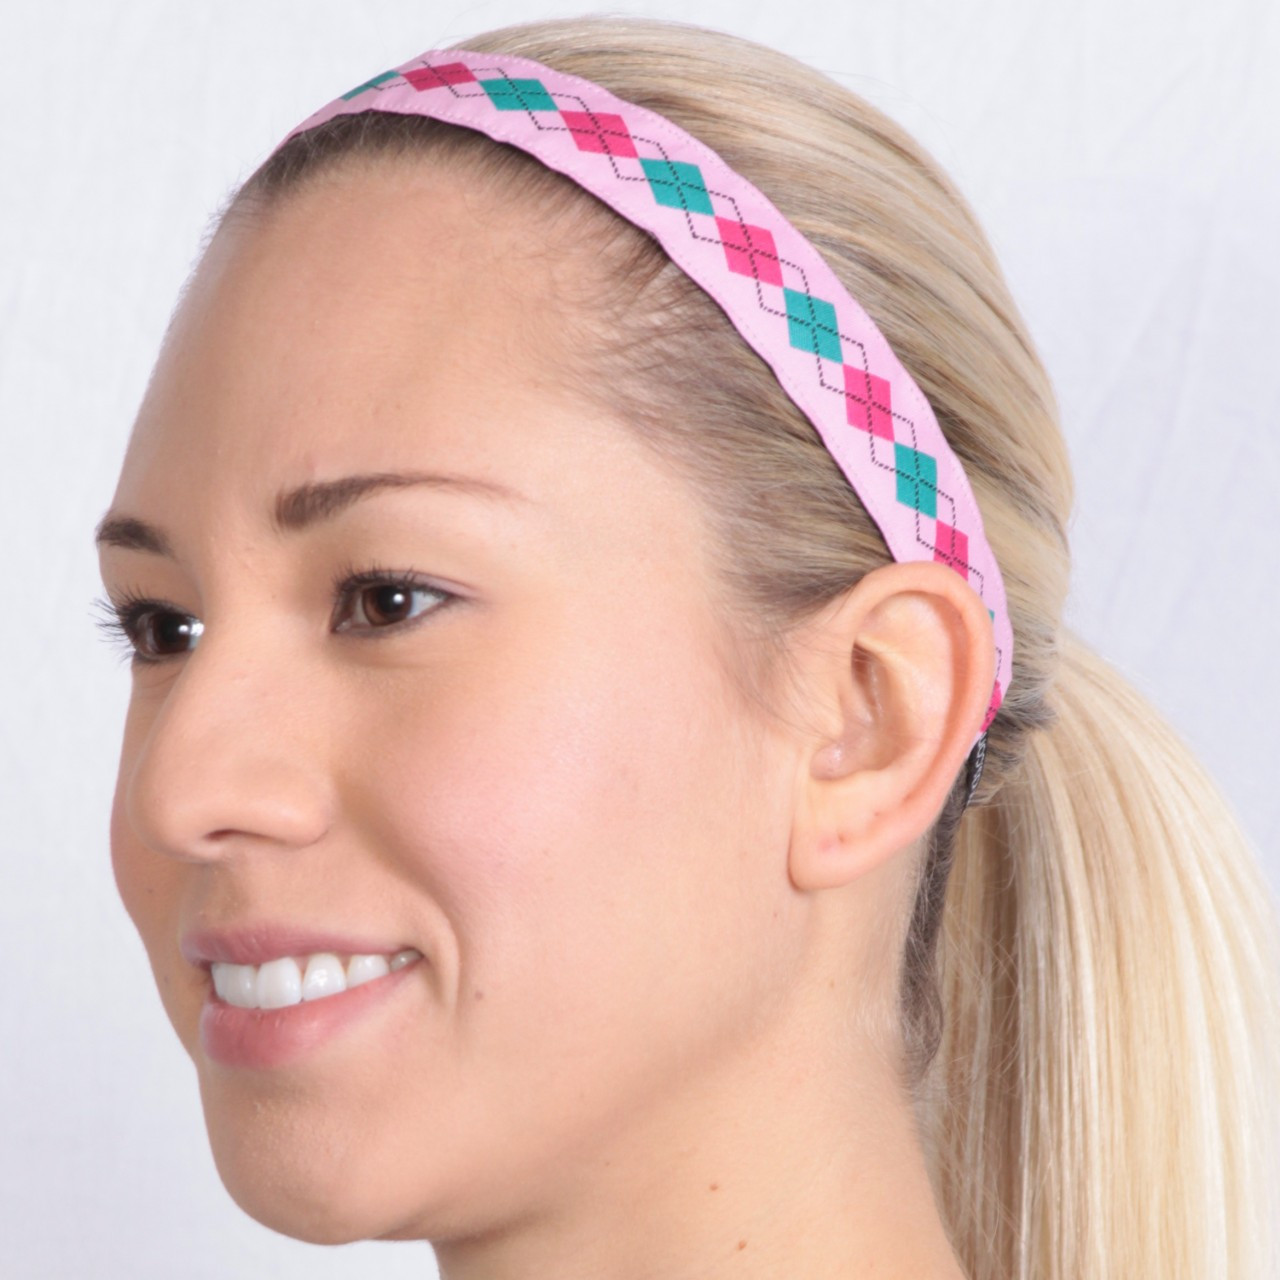 SALE Thin Preppy Girl Pink Argyle - BIC Bands Non-Slip Headbands 21df26d963df